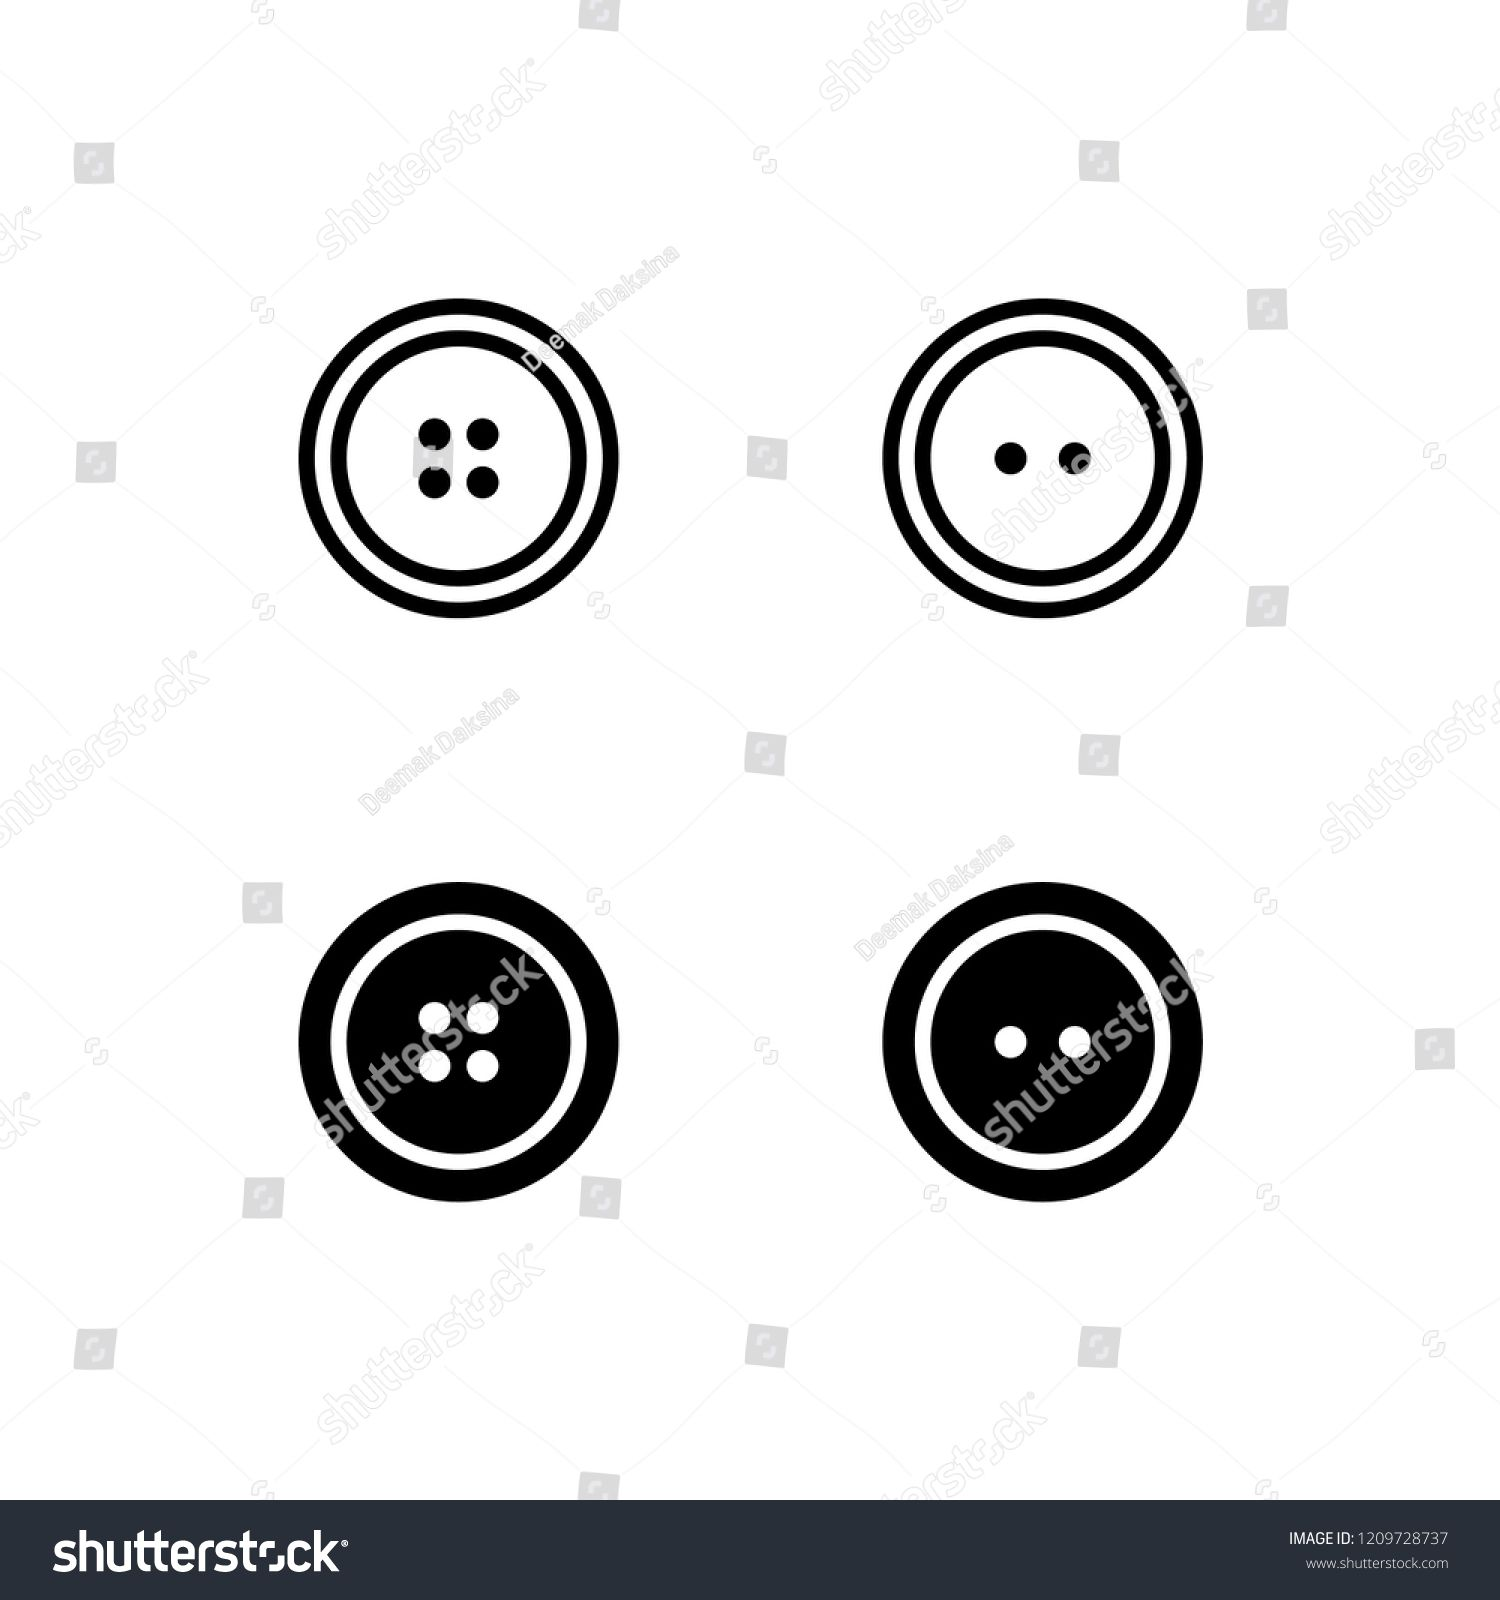 Sewing Button Icon Design. sewing button, fashion, buttons